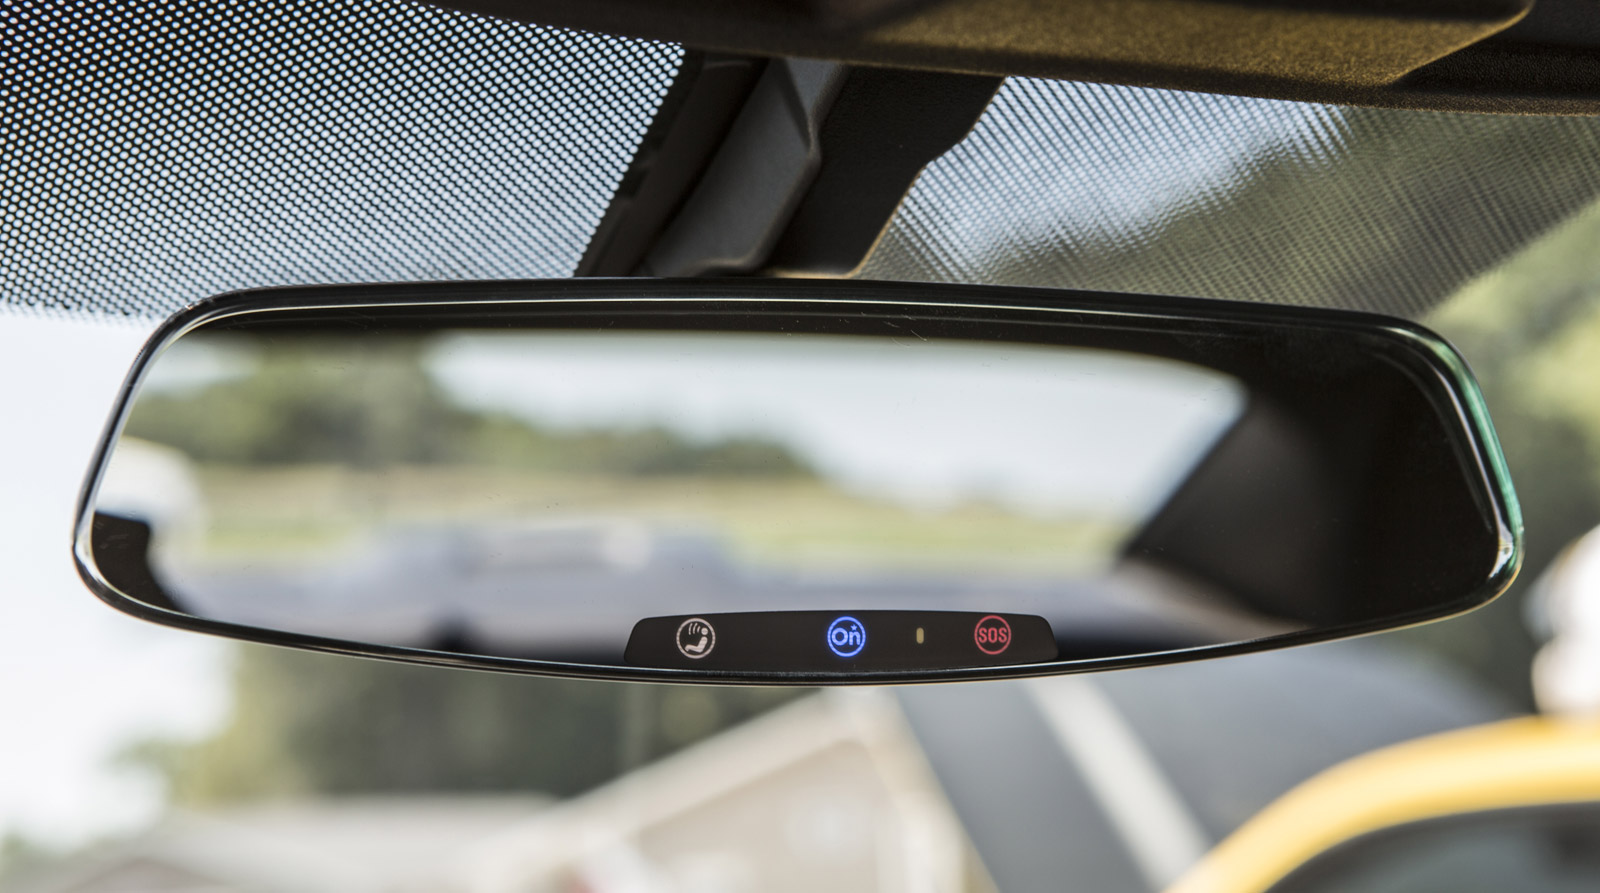 2013 chevy camaro gets frameless rear view mirror in onstar revamp. Black Bedroom Furniture Sets. Home Design Ideas